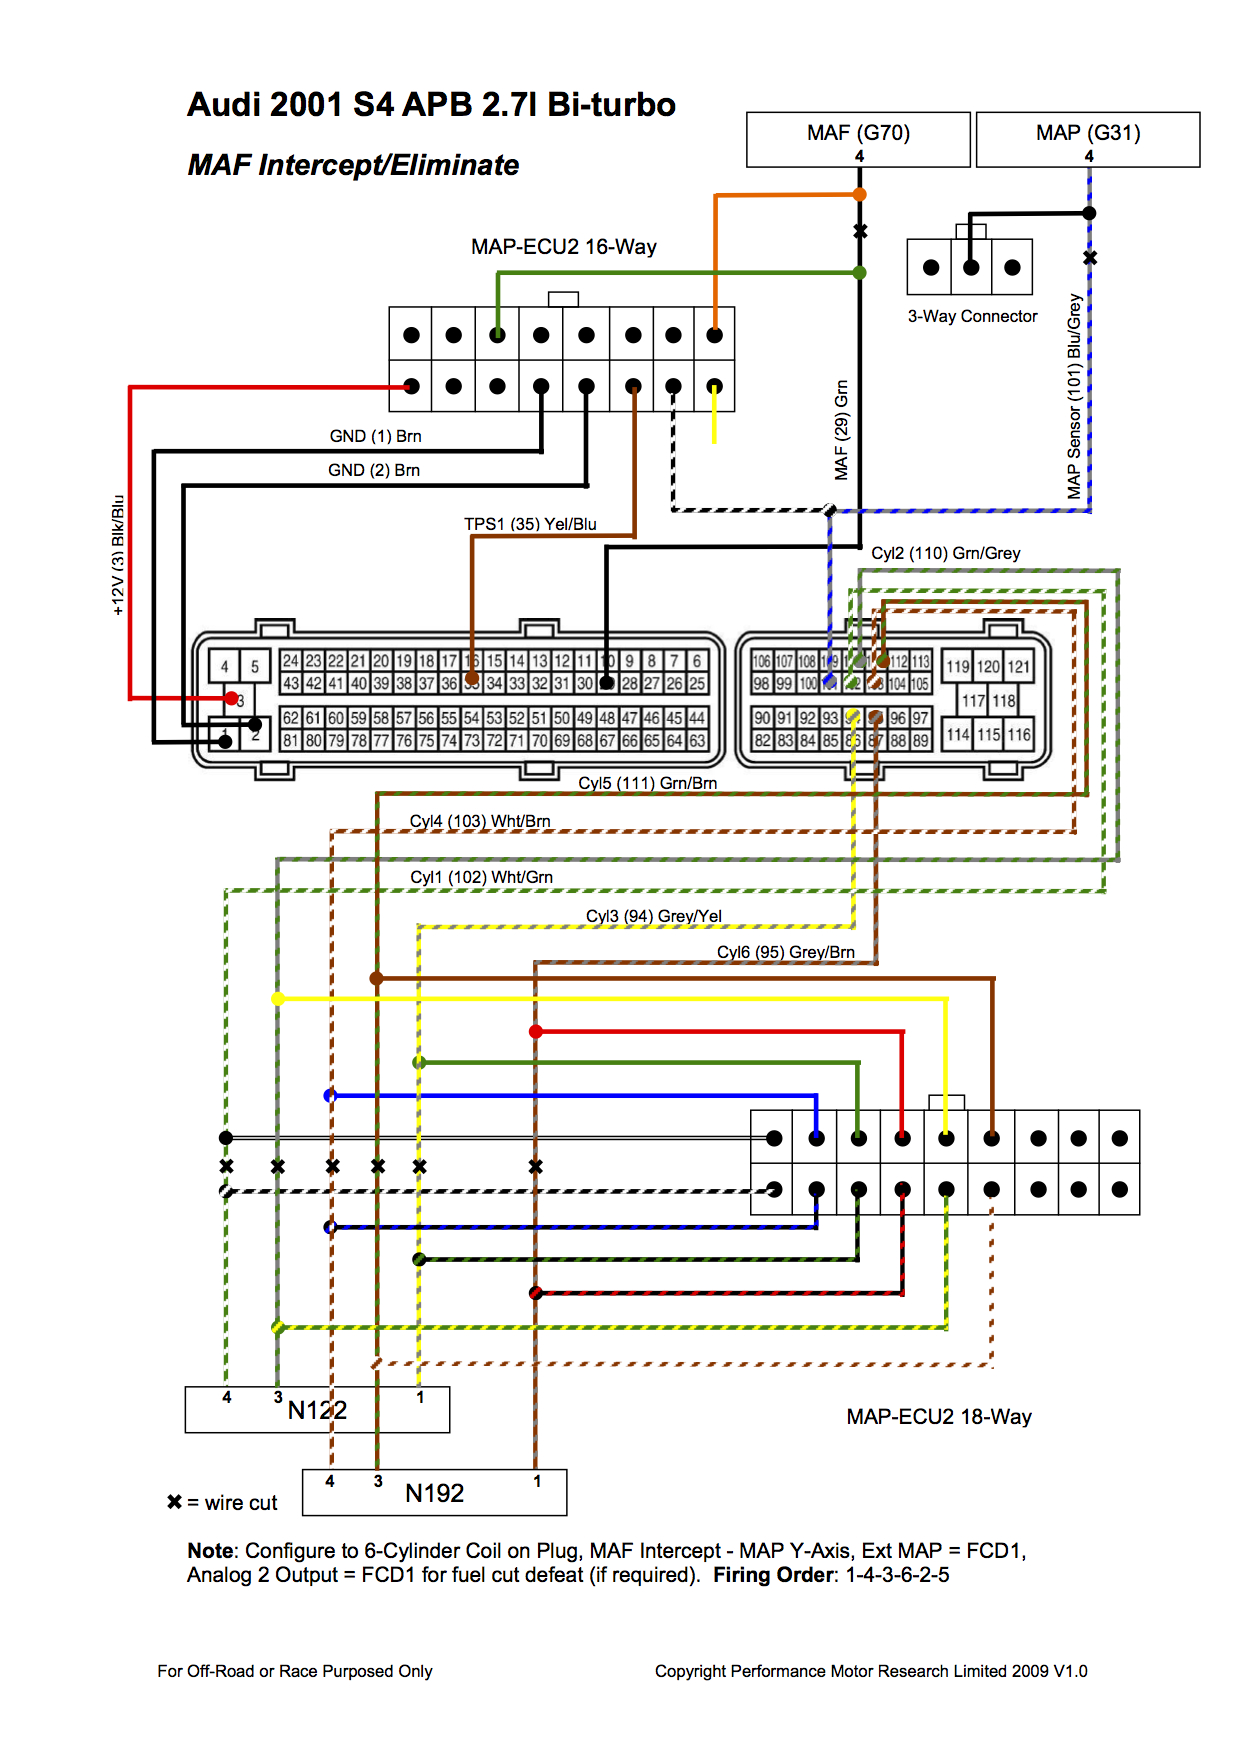 Audi S4 20011 2zz ge wiring diagram ge profile dryer wiring diagram \u2022 wiring pf1202t wiring diagram at couponss.co